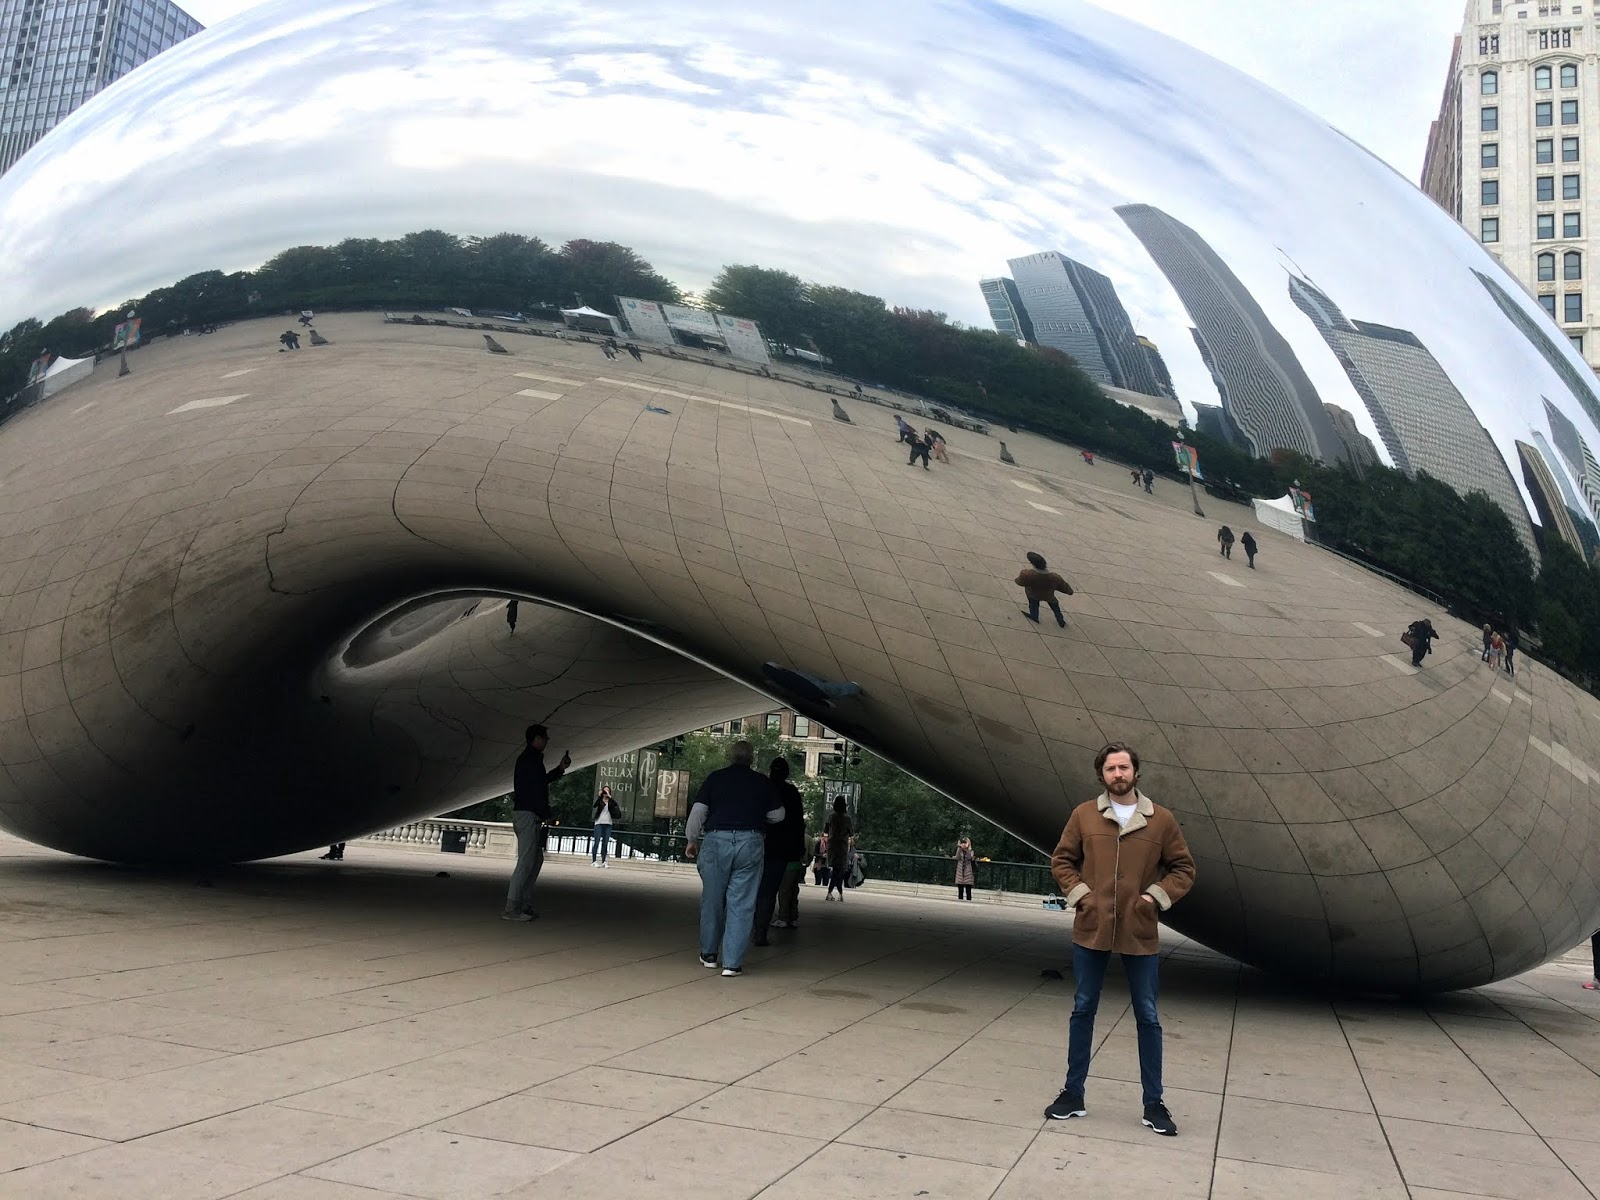 Person standing in front of a huge reflective sculpture in Millenium Park, Chicago